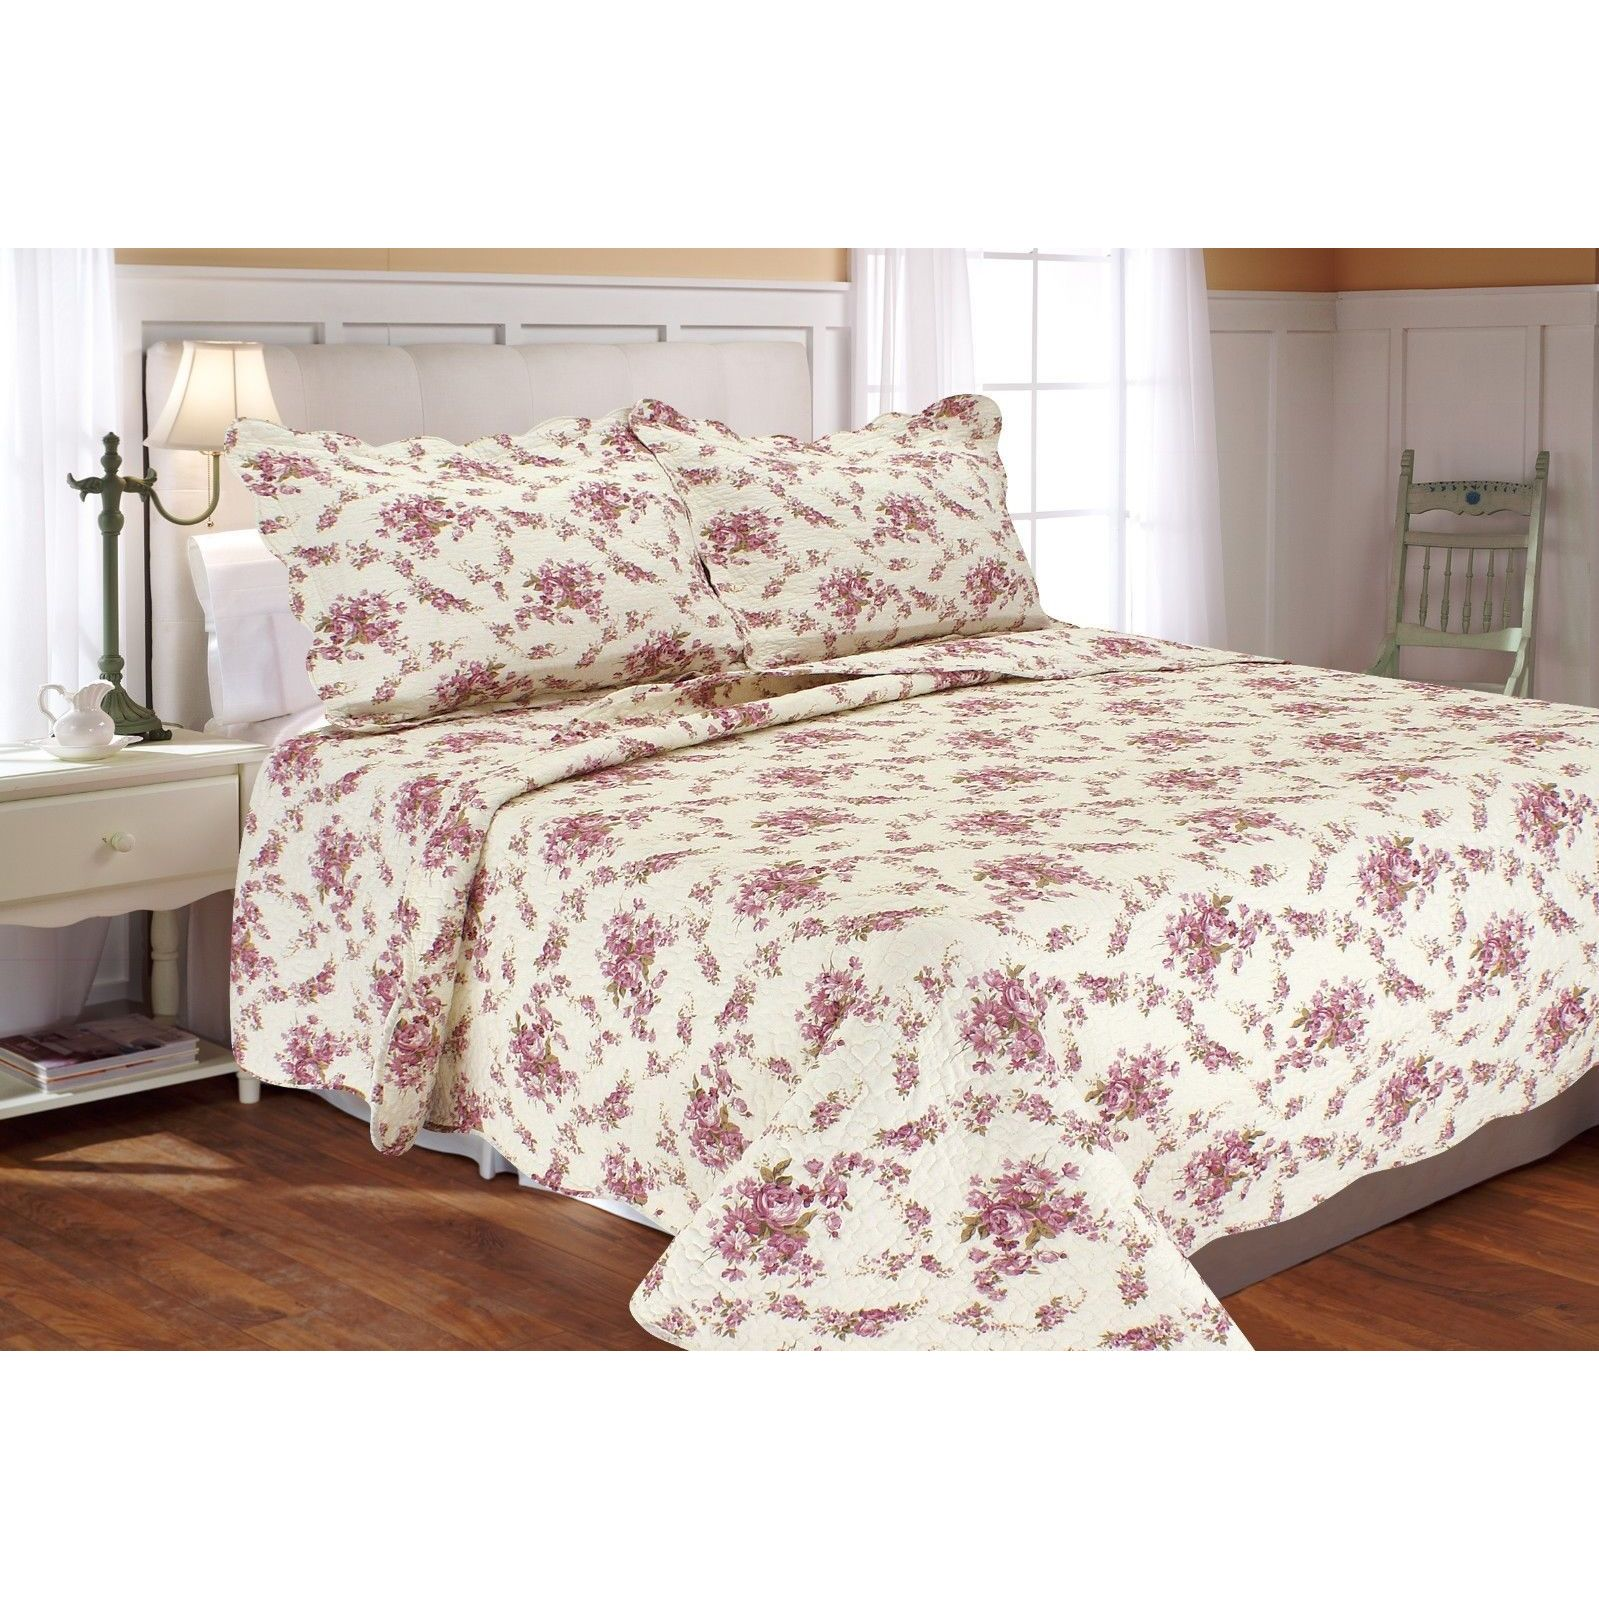 Vintage Rose Quilt Set On Sale Overstock 12516017